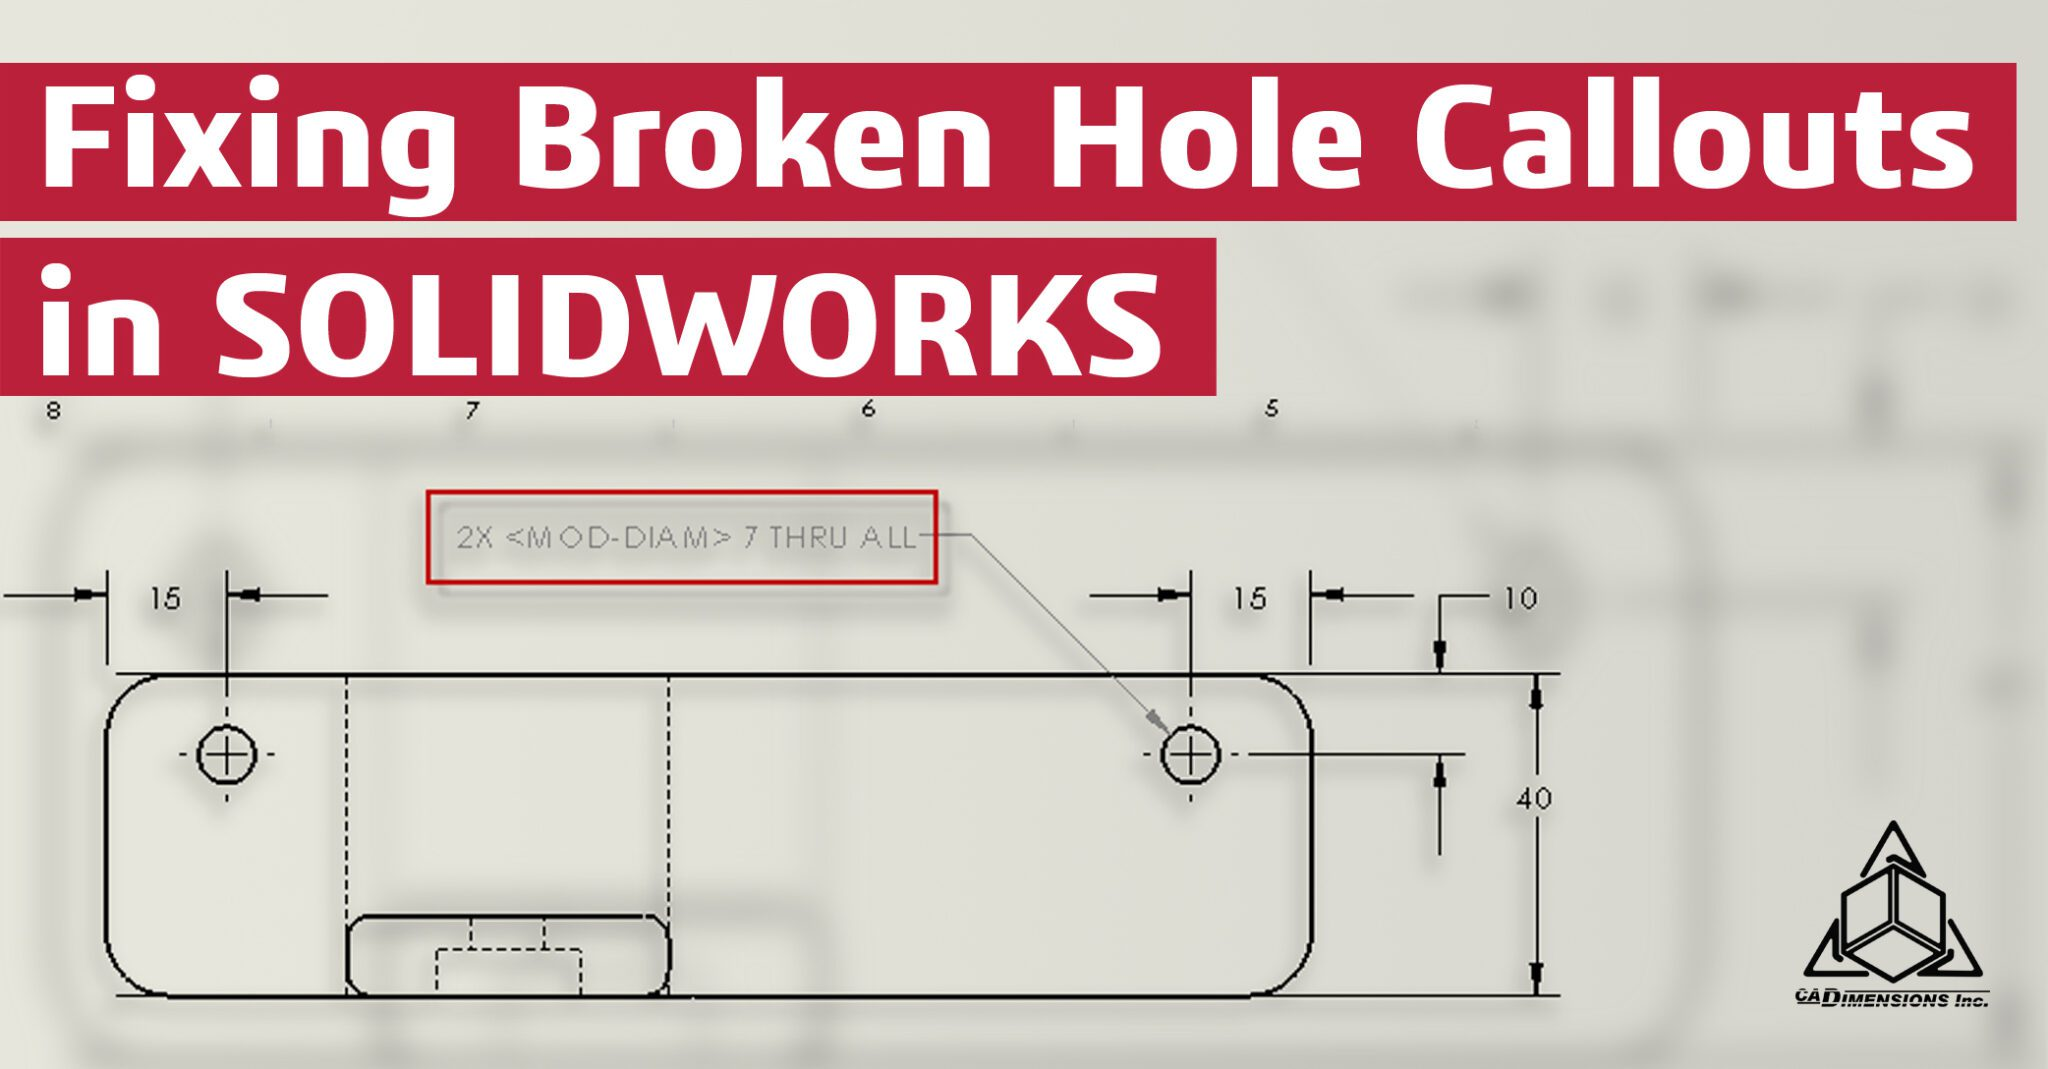 fixing broken hole callouts in solidworks with CADimensions